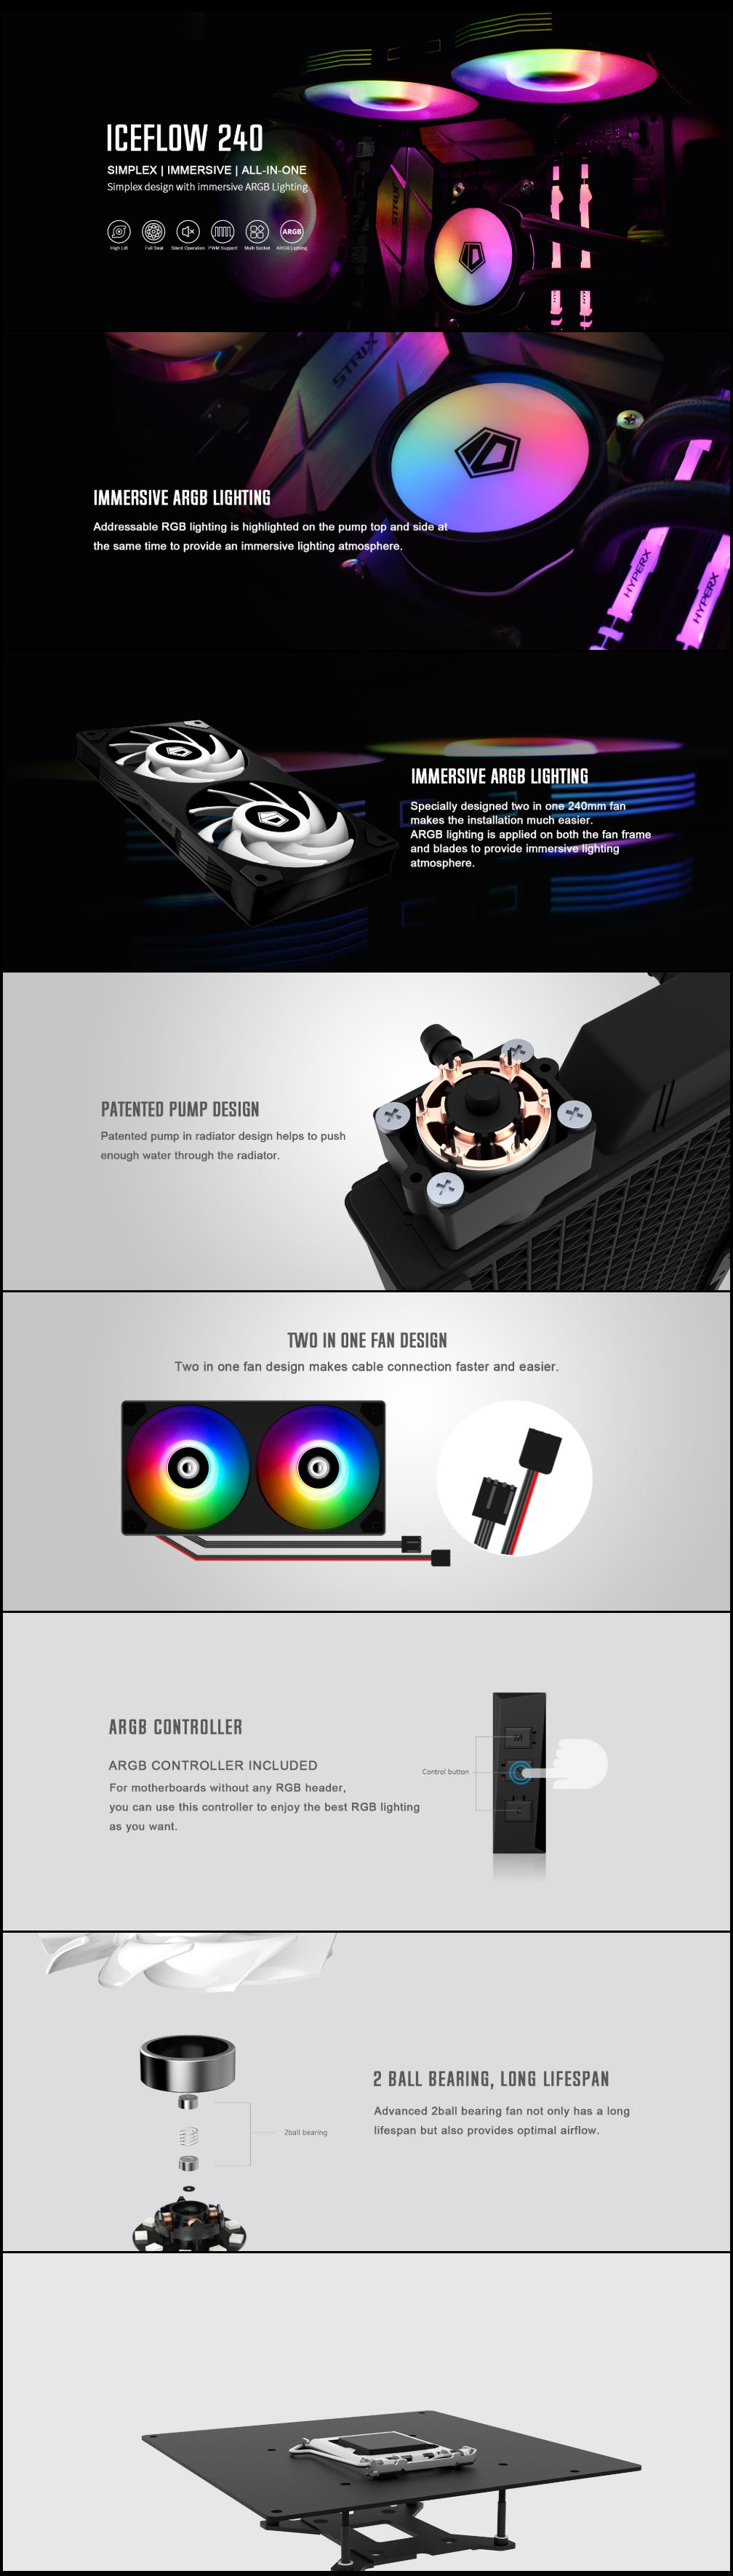 A large marketing image providing additional information about the product ID-COOLING IceFlow 240 Addressable RGB AIO CPU Liquid Cooler - Additional alt info not provided